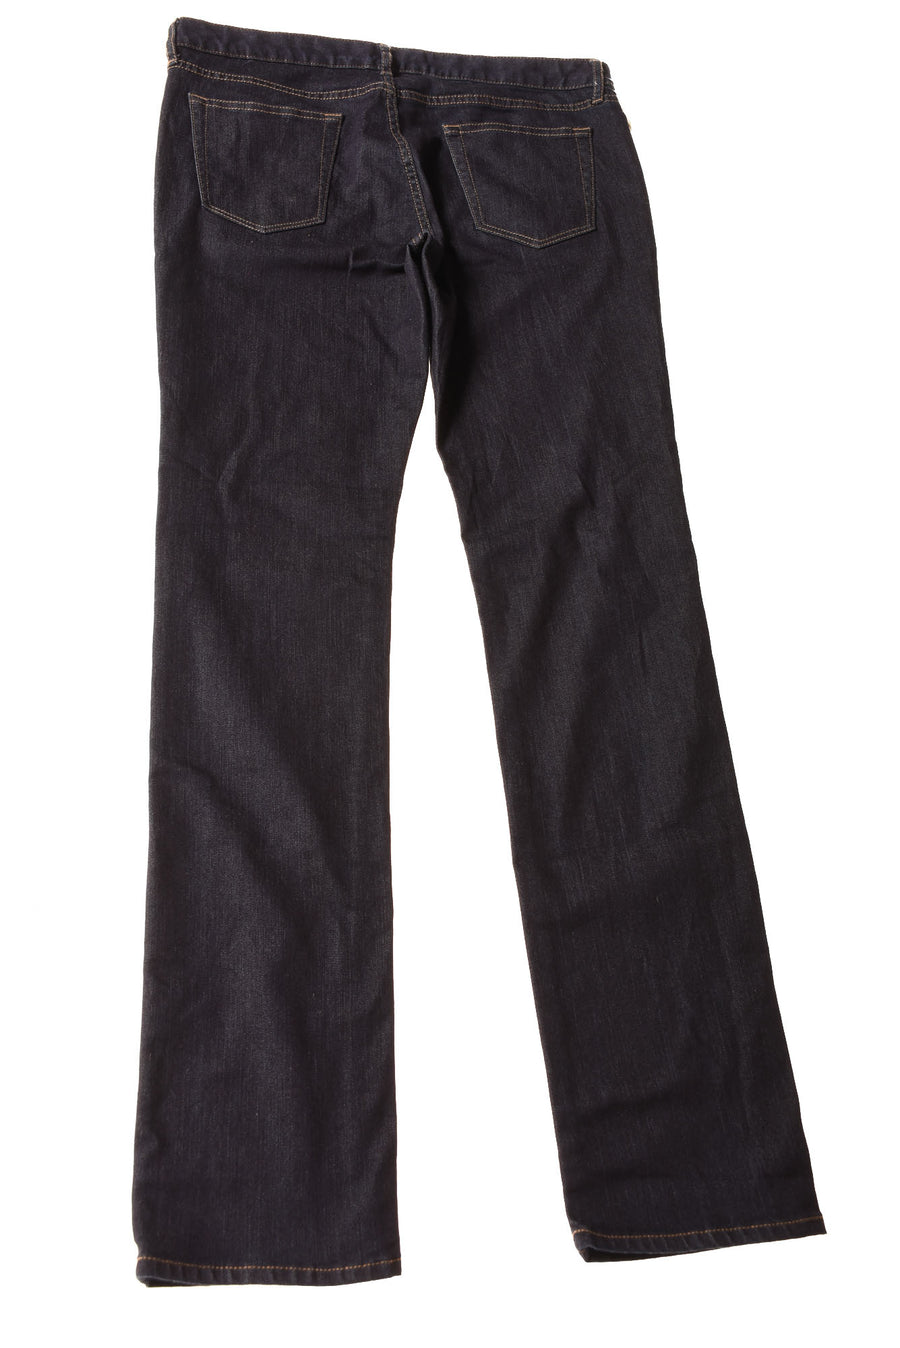 NEW Uniqlo Women's Jeans 30 Dark Blue